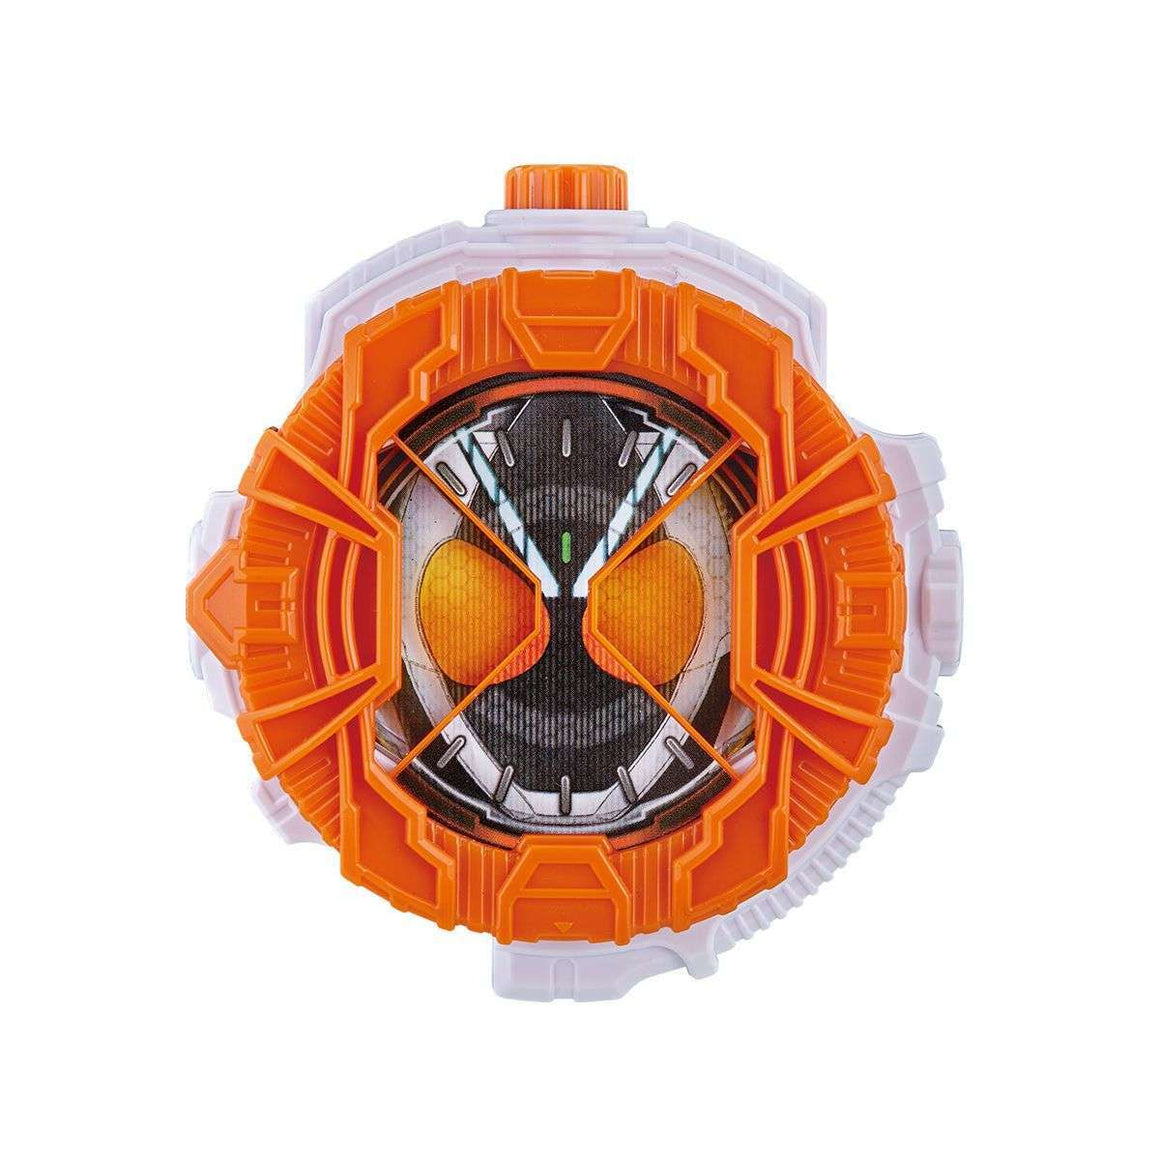 CSTOYS INTERNATIONAL:Kamen Rider Zi-O: DX Fourze Ride Watch